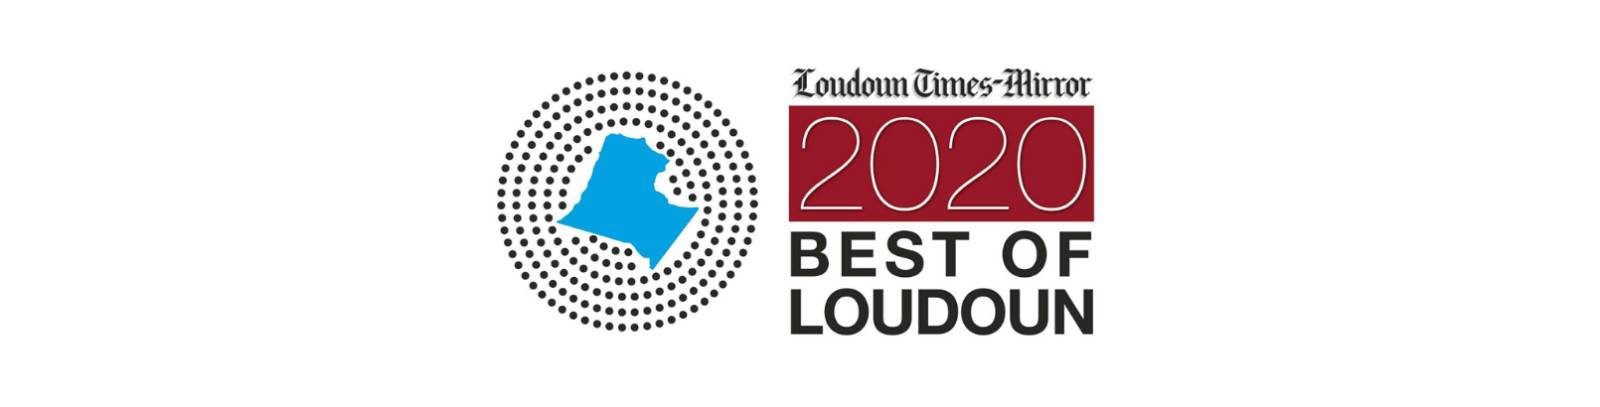 Why We're Proud to Win Best of Loudoun 2020!